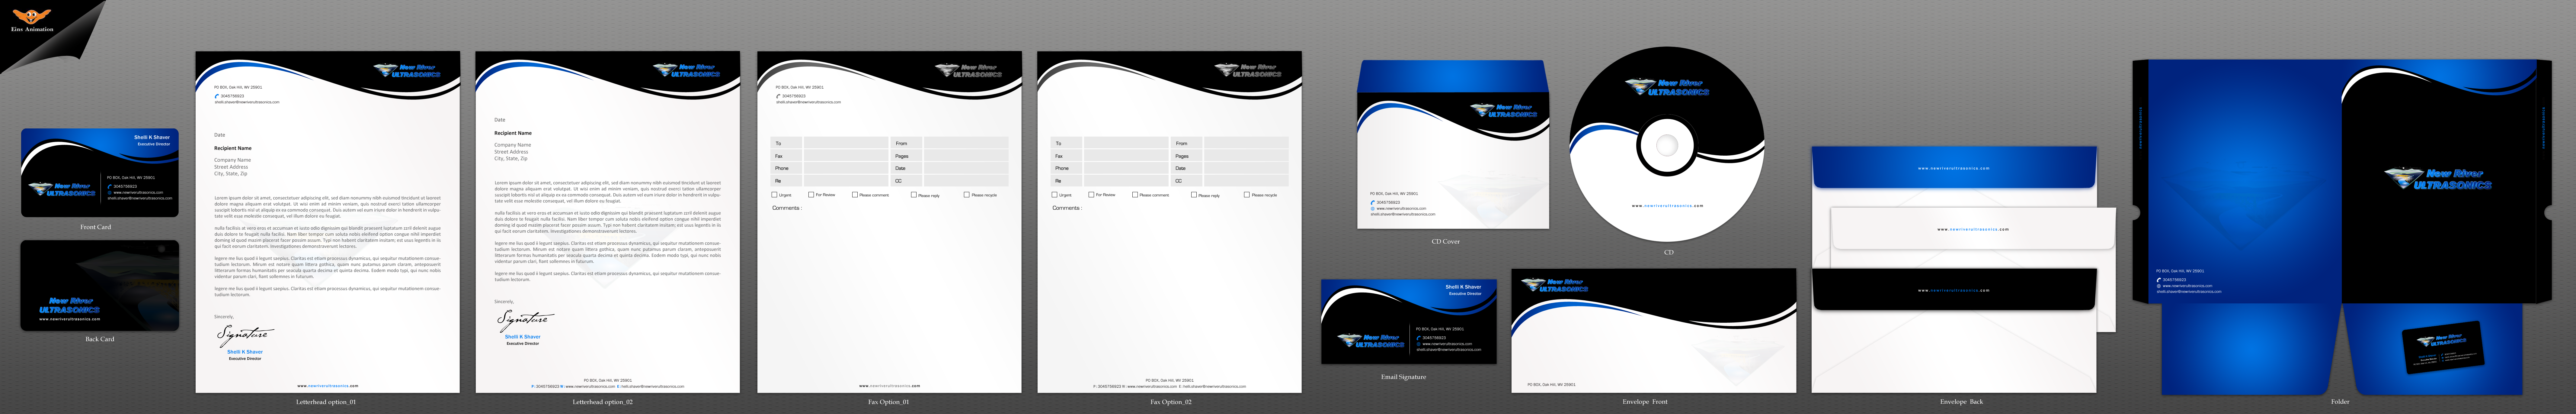 Business cards and Stationary for Mobile Ultrasound Company - Medical